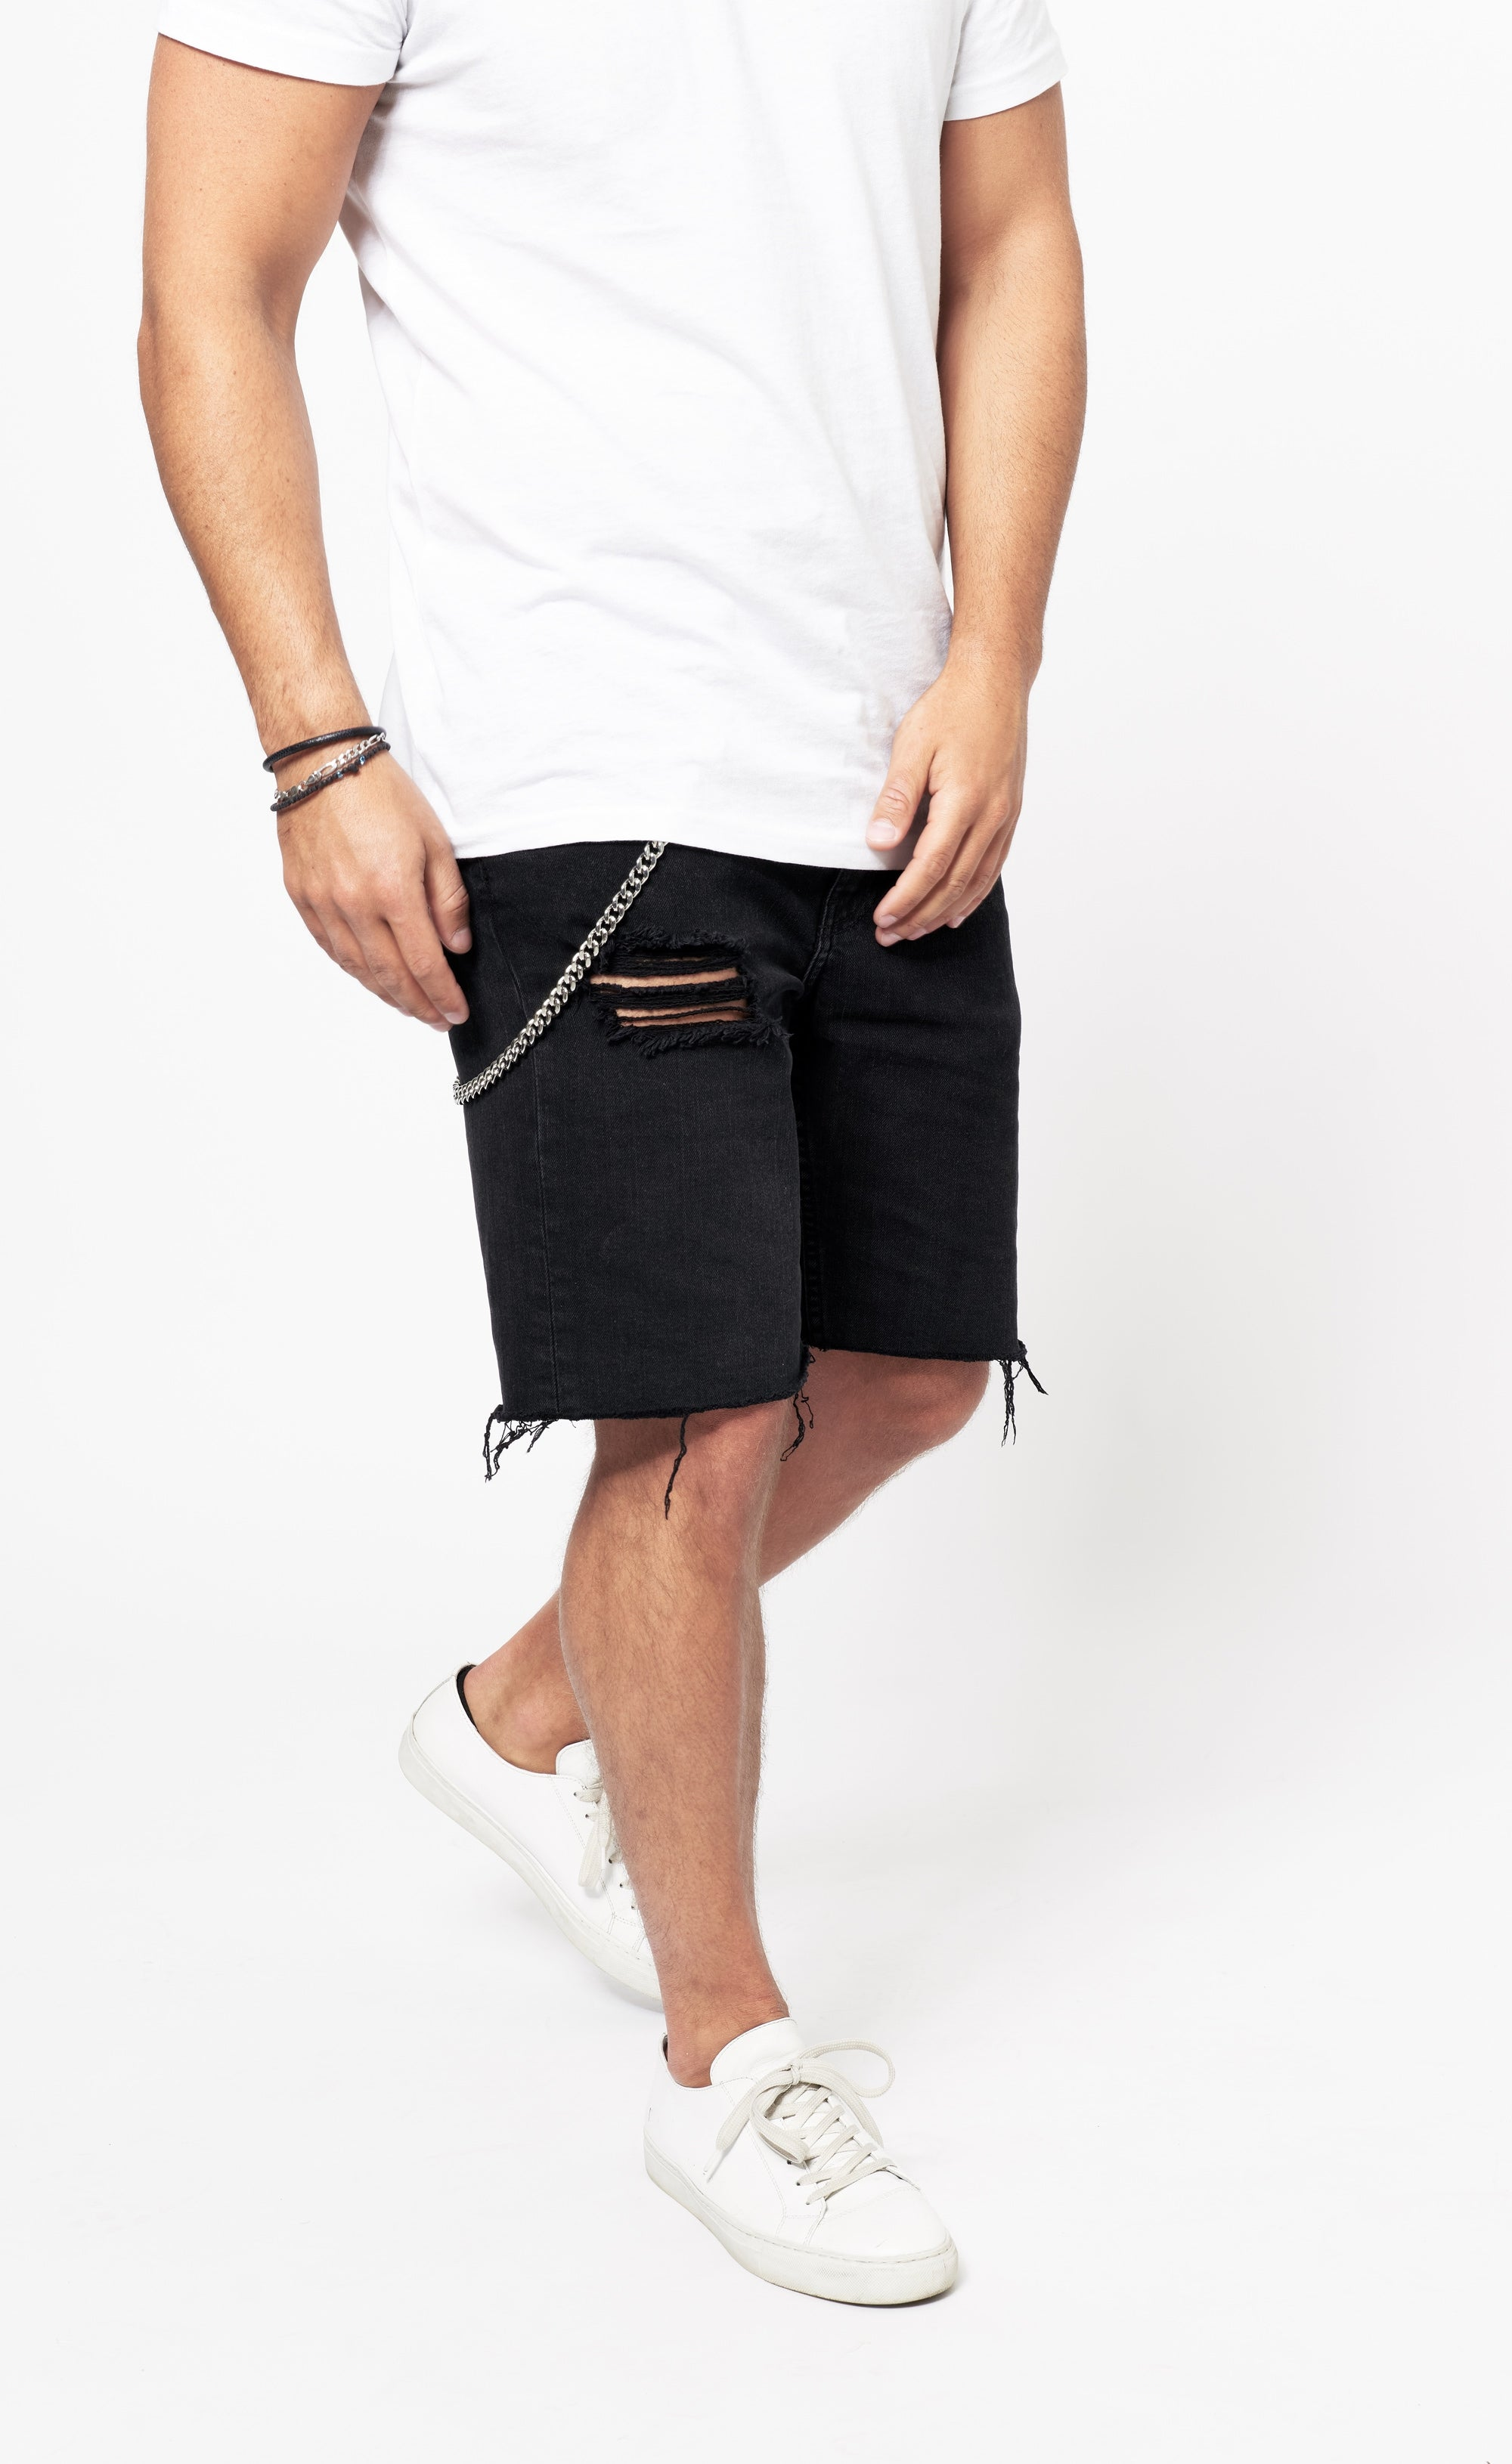 CLASSIC DENIM SHORTS -  BLACK - Forage-Clothing